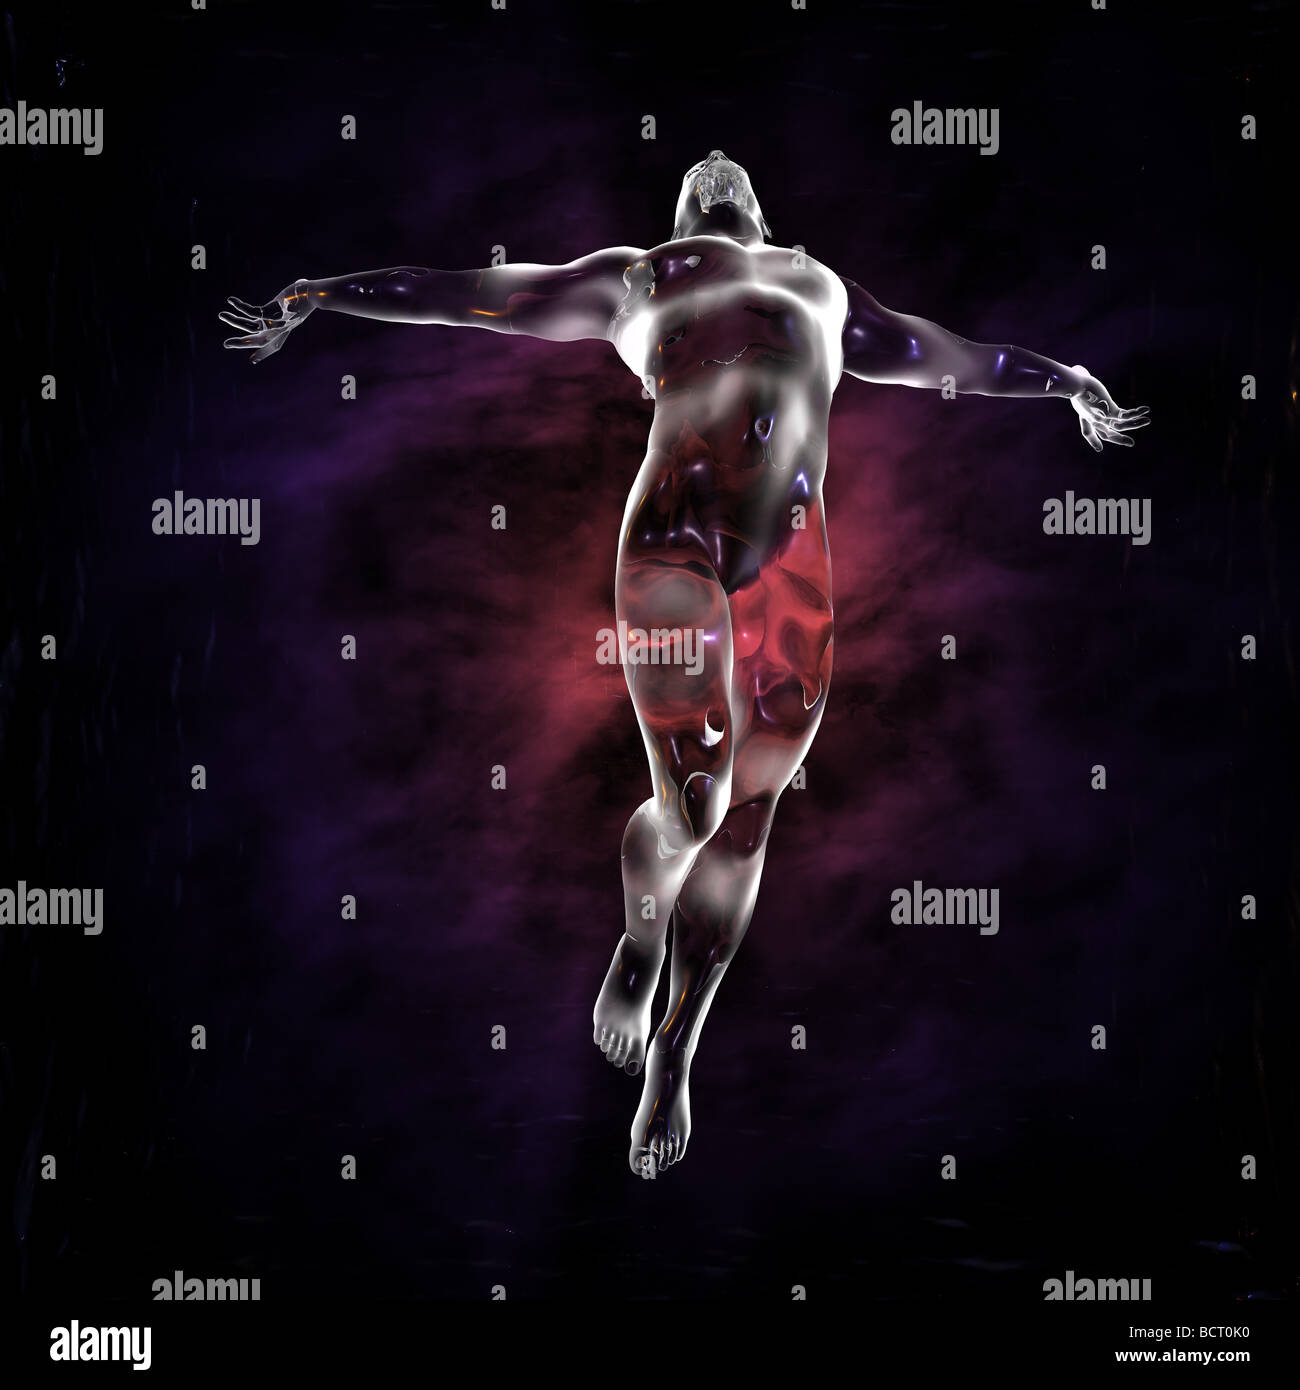 A glass man rises in ascension with an ethereal lights background. Image has many religious implications and sci - Stock Image